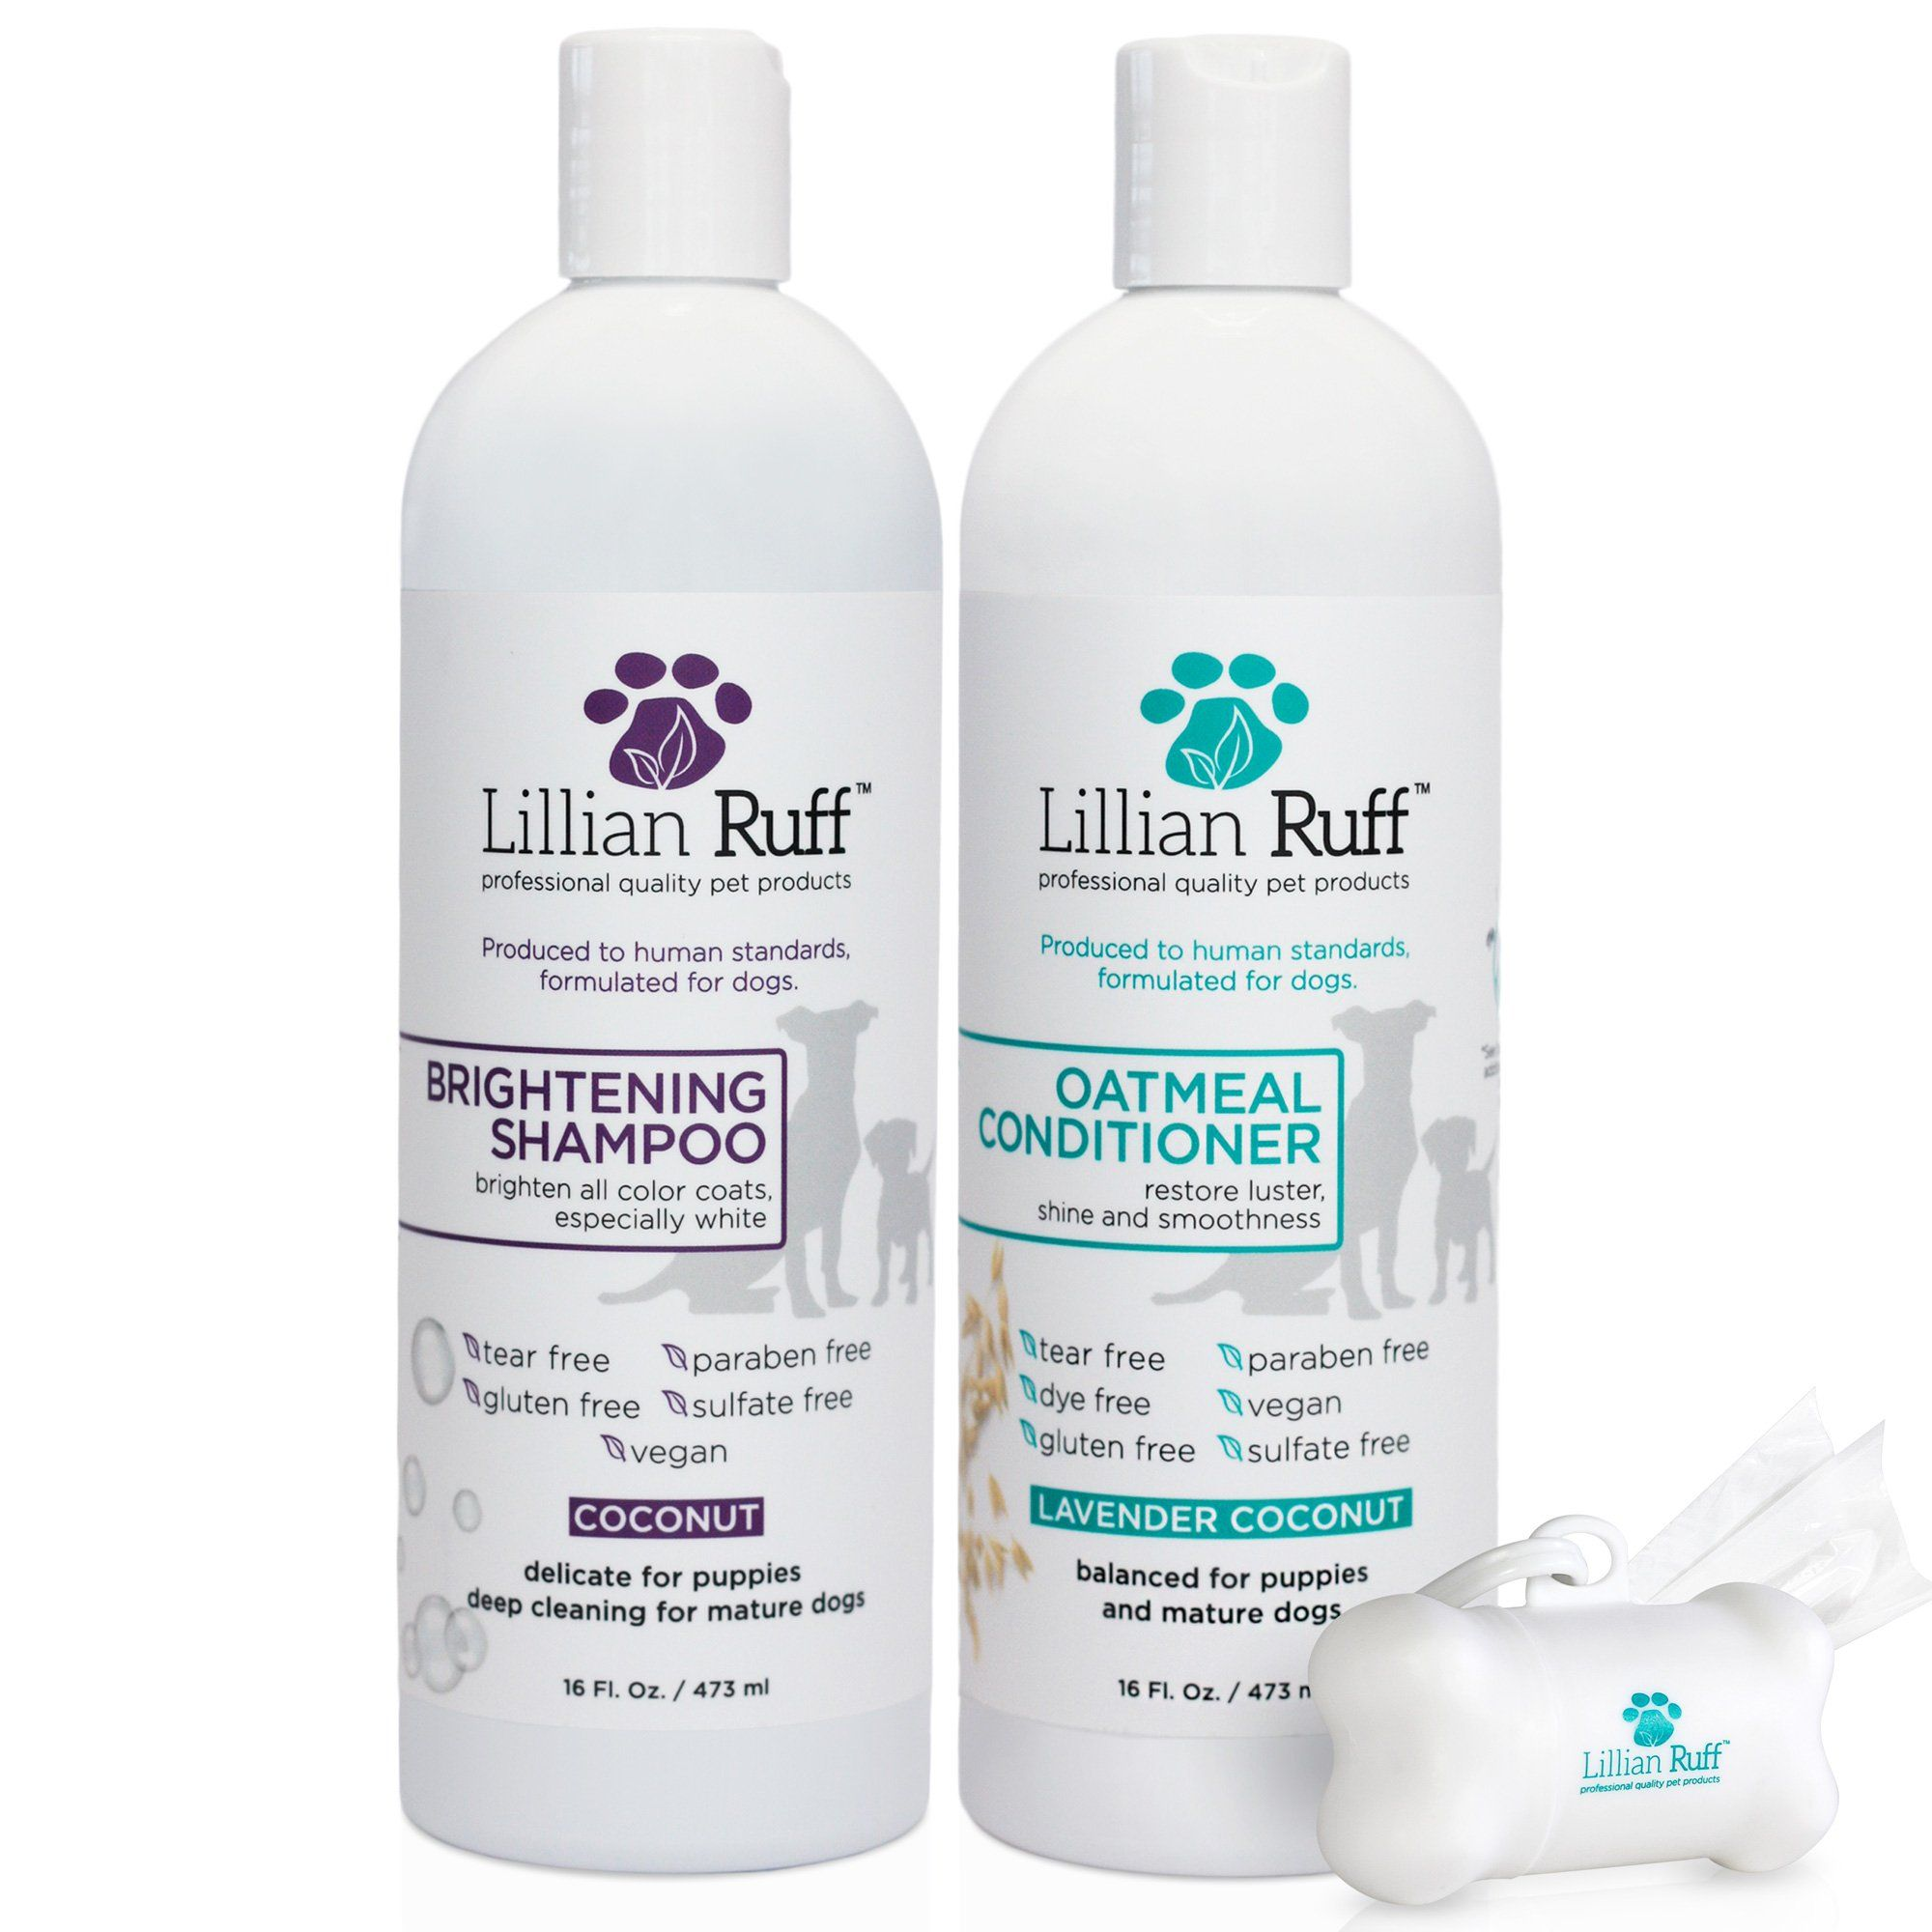 Lillian Ruff Dog Shampoo Conditioner Set Coconut Brightening Shampoo And Soothing Lavender Coconut Oatme Dog Shampoo Brightening Shampoo Paraben Free Products